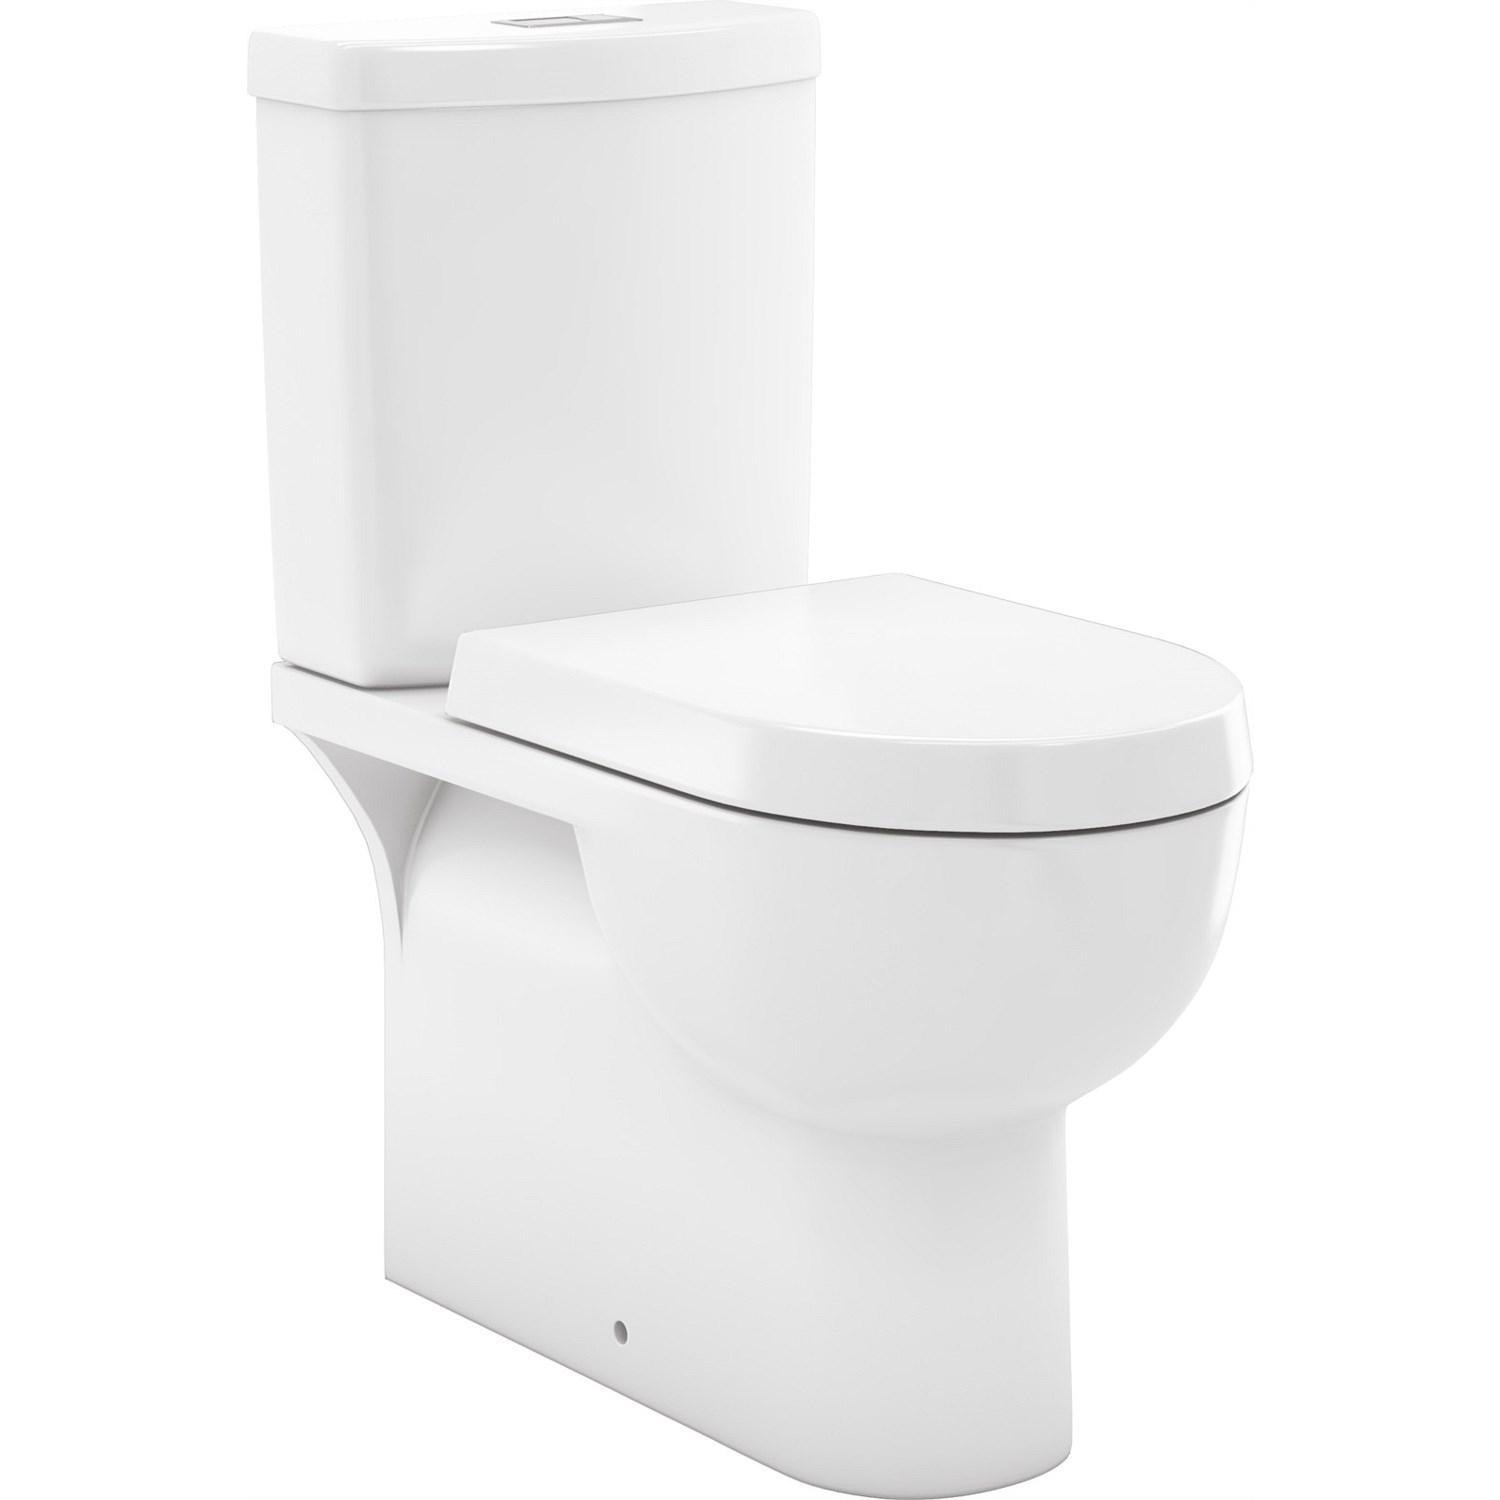 Toilet Suites | Plumbing World - LeVivi Brooklyn Back-To-Wall Toilet ...